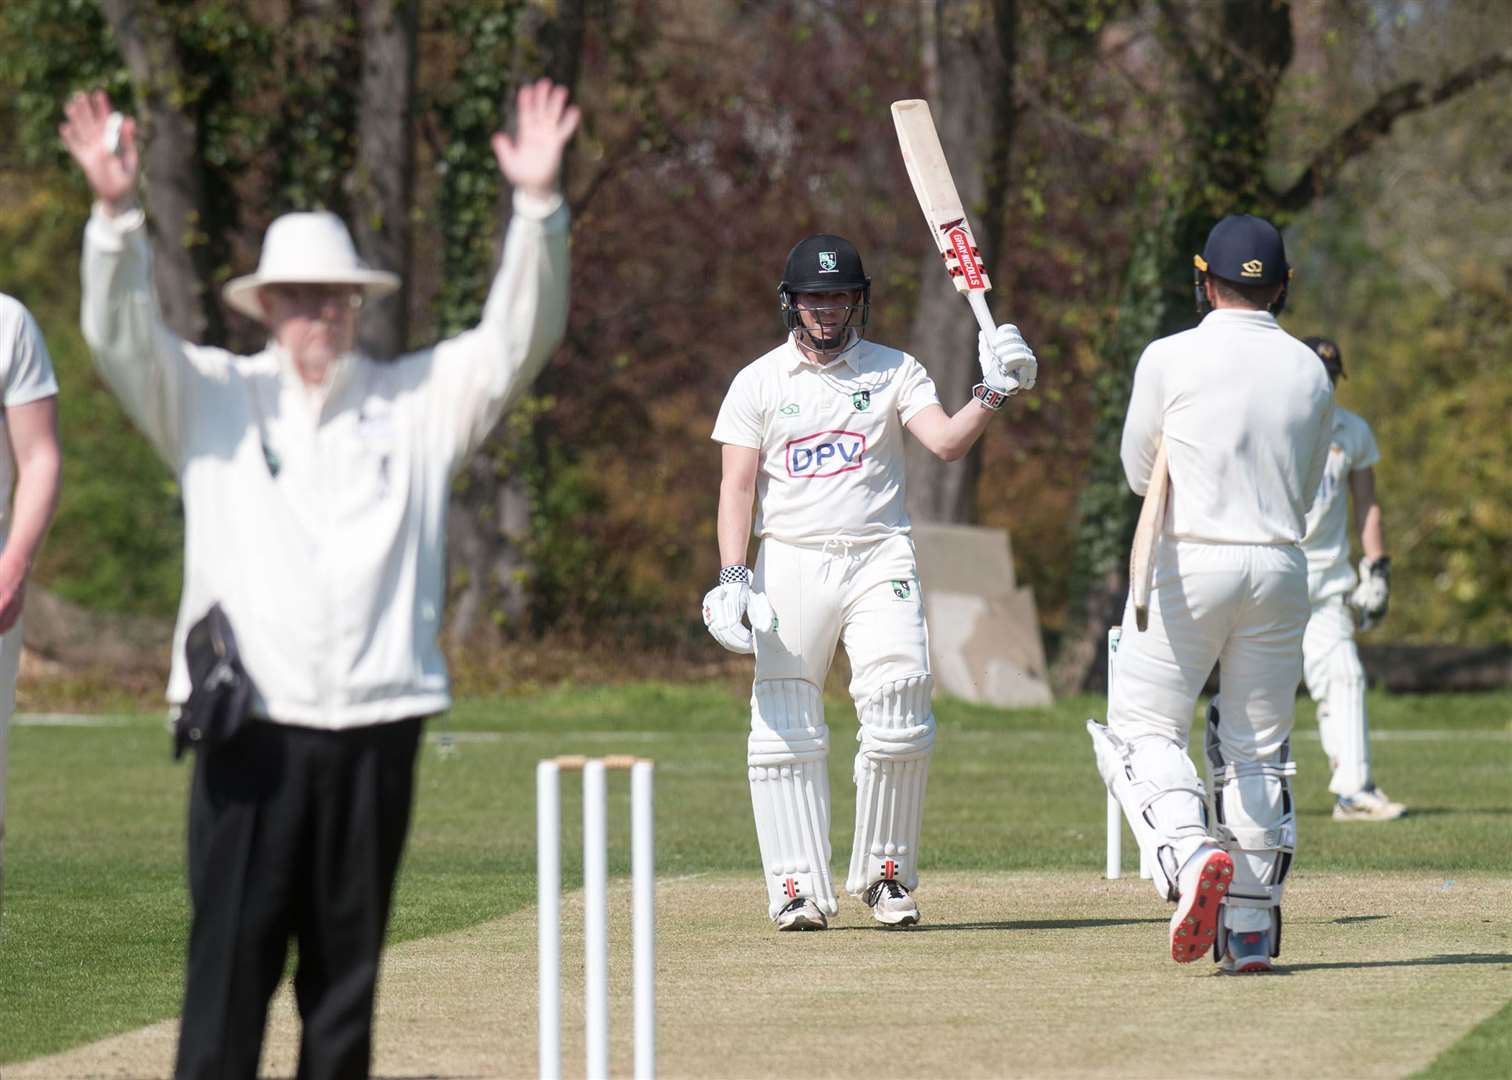 CRICKET: Burwell & Exning v Vauxhall Mallards Tim Catley scored 103 for B&E Picture by Mark Westley. (8955532)